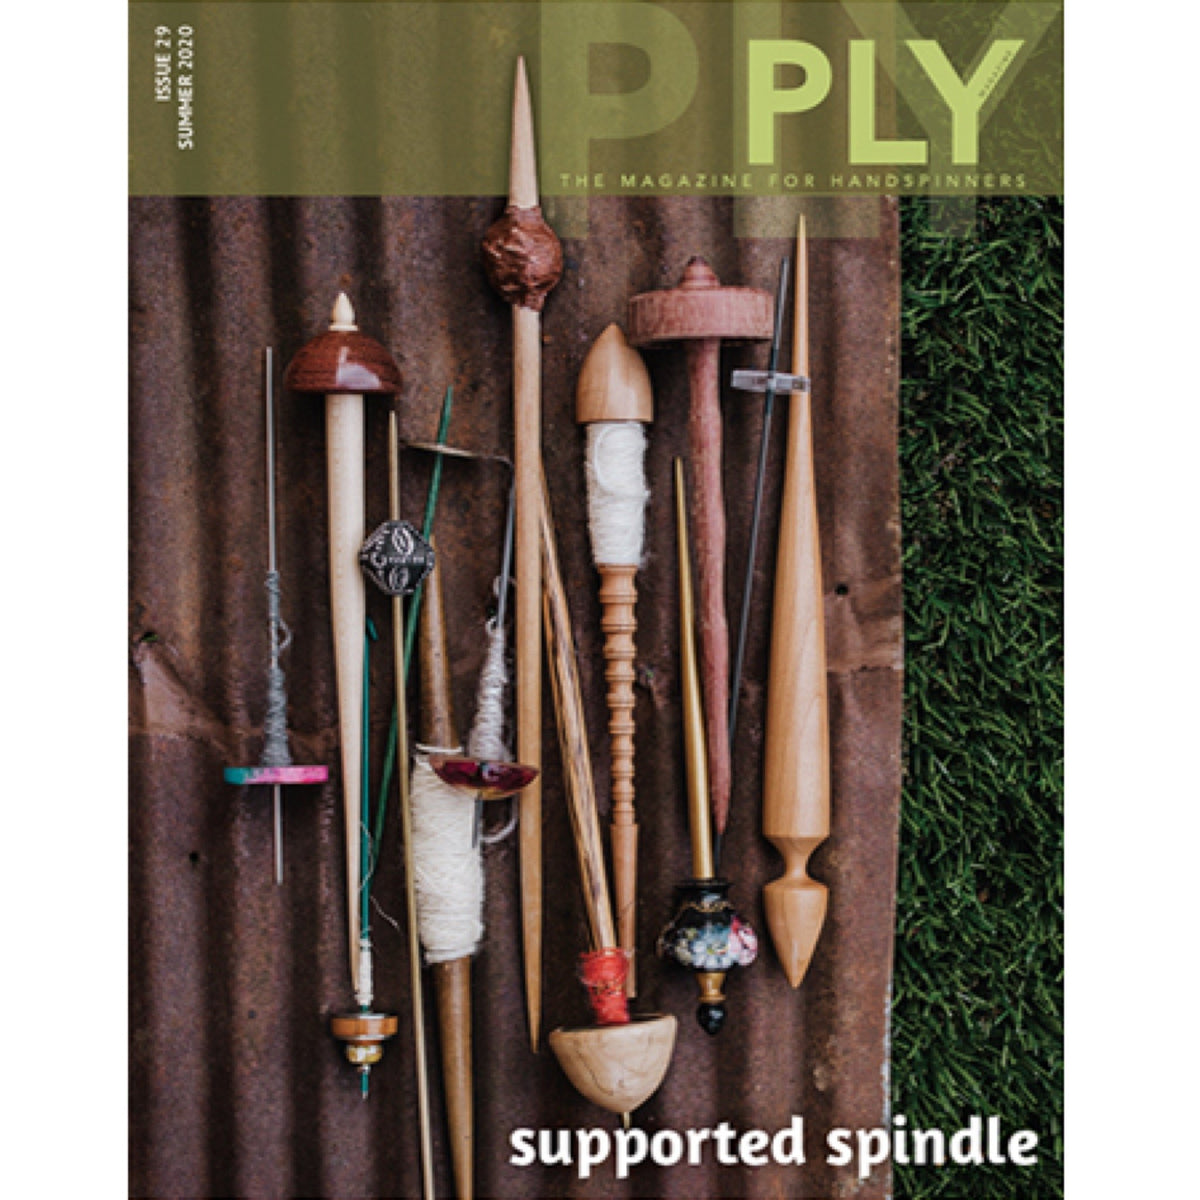 Supported Spindle - Issue 29, Summer 20 by Ply Magazine | Twisted